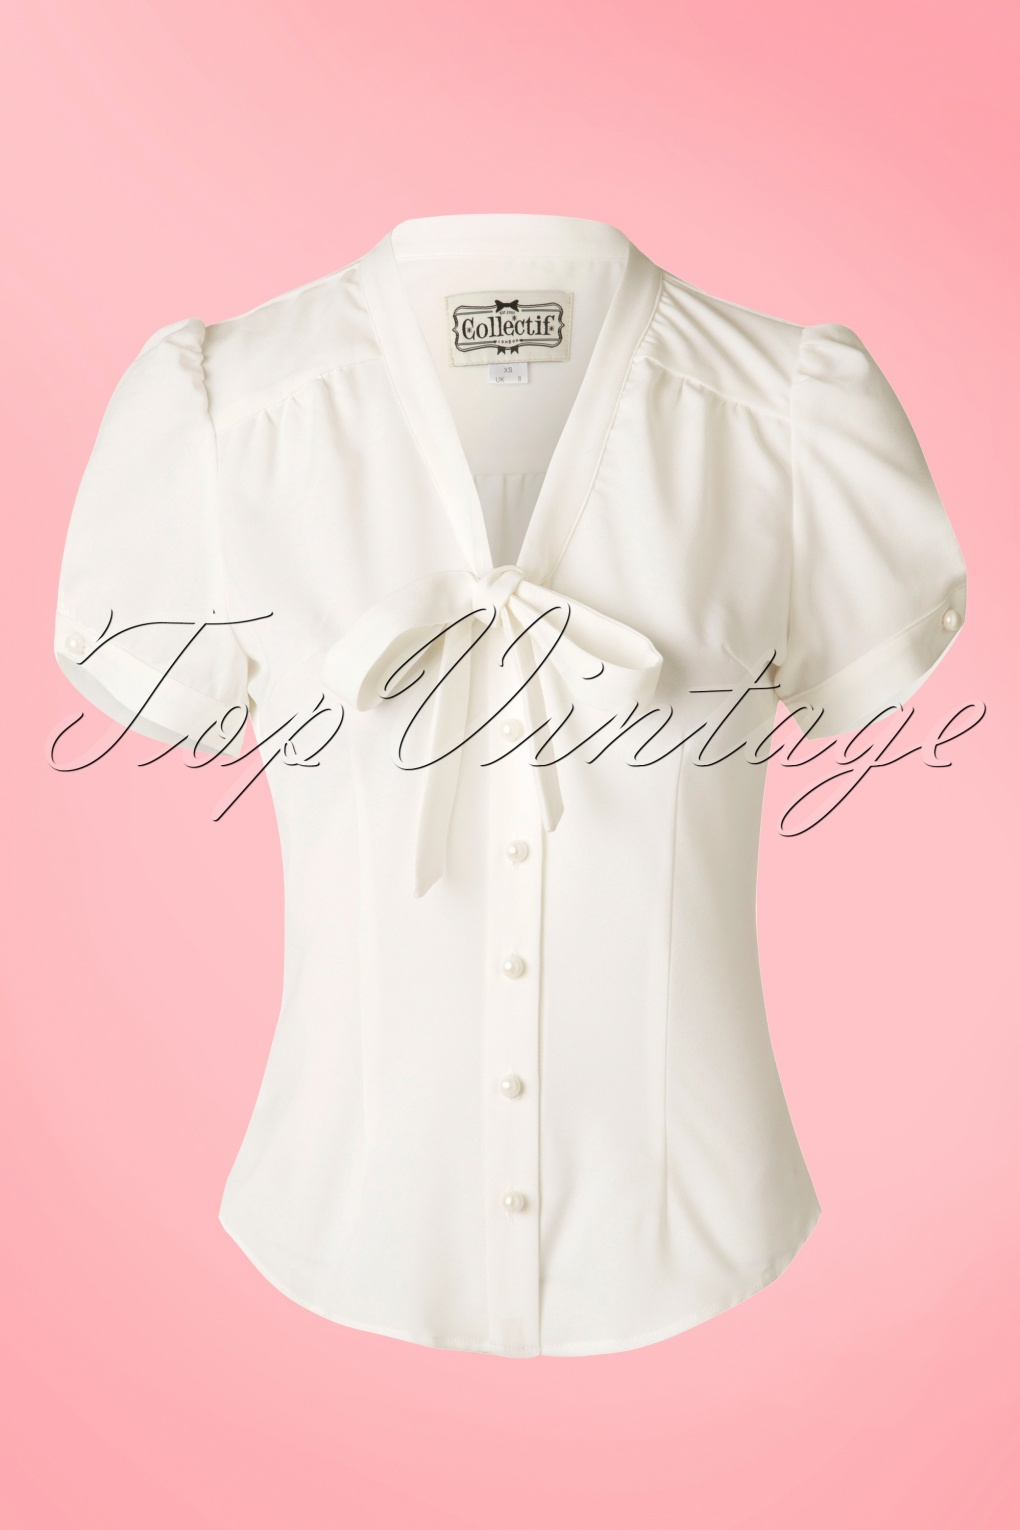 Vintage & Retro Shirts, Halter Tops, Blouses 50s Tura Bow Blouse in Ivory £35.85 AT vintagedancer.com